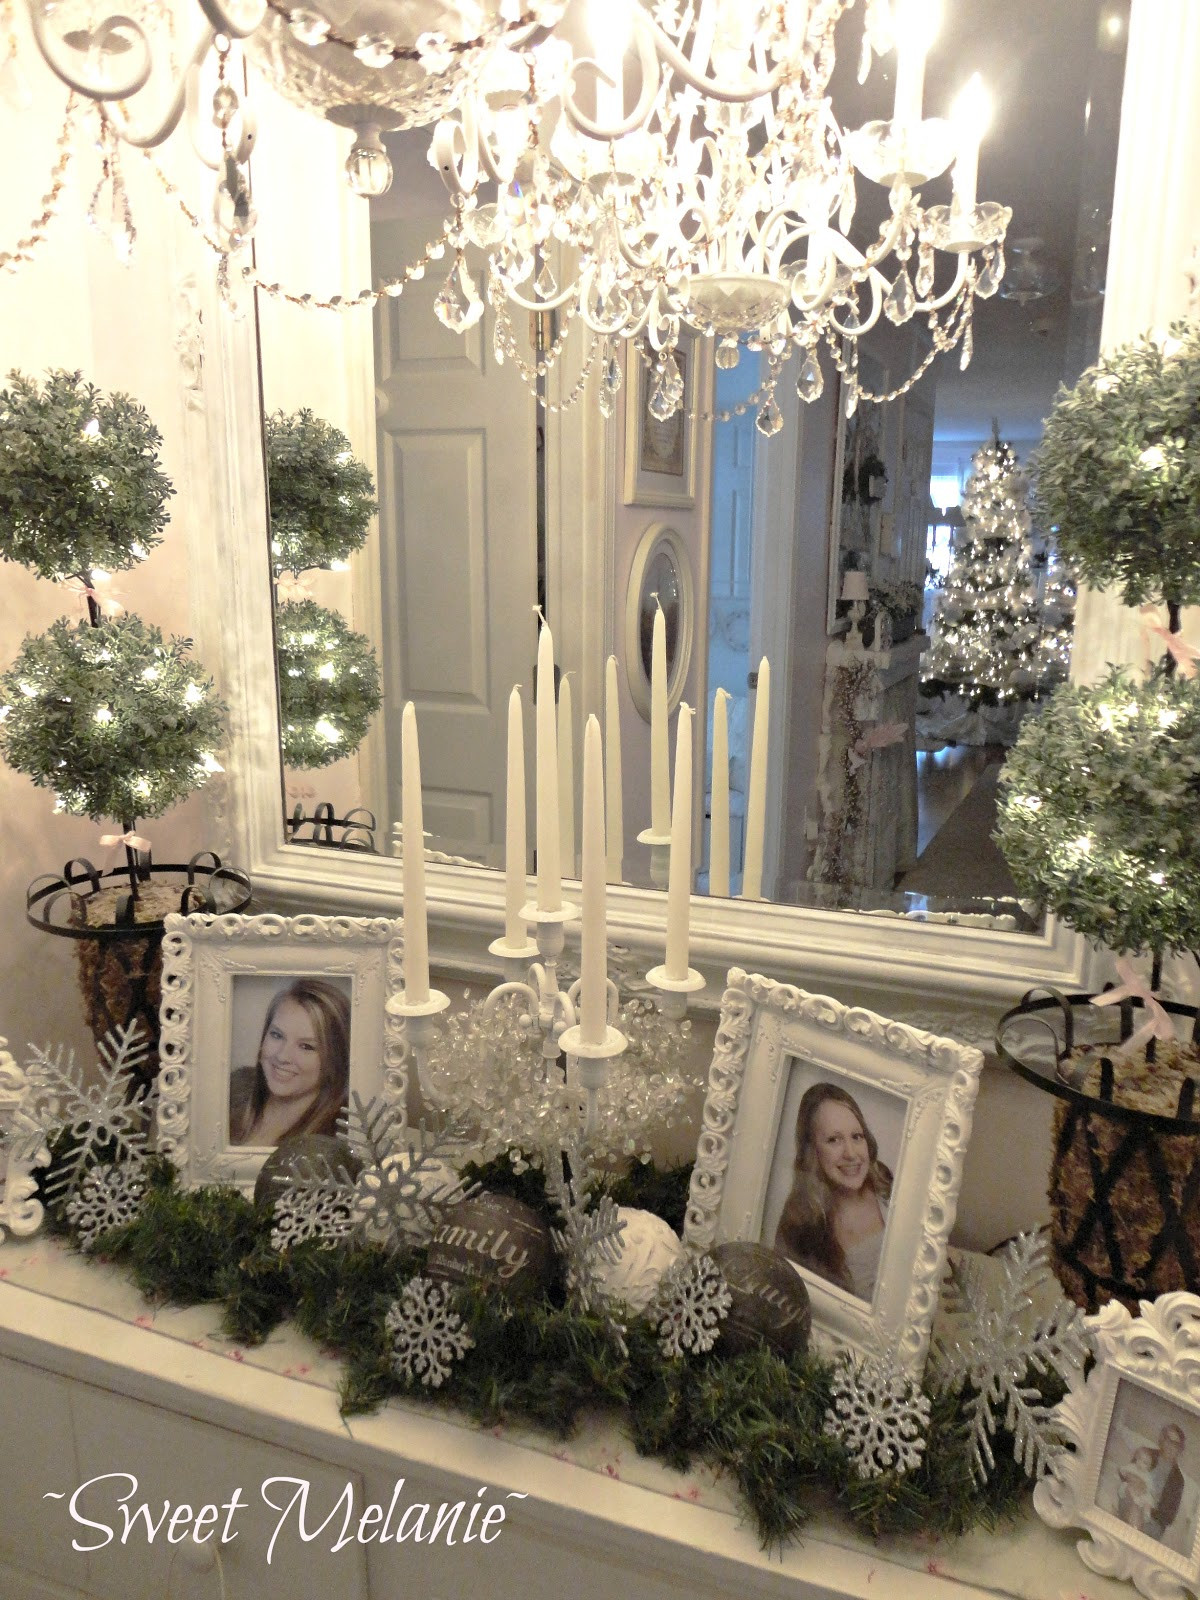 Best ideas about Shabby Chic Christmas . Save or Pin Shabby chic Christmas Home tour Debbiedoo s Now.